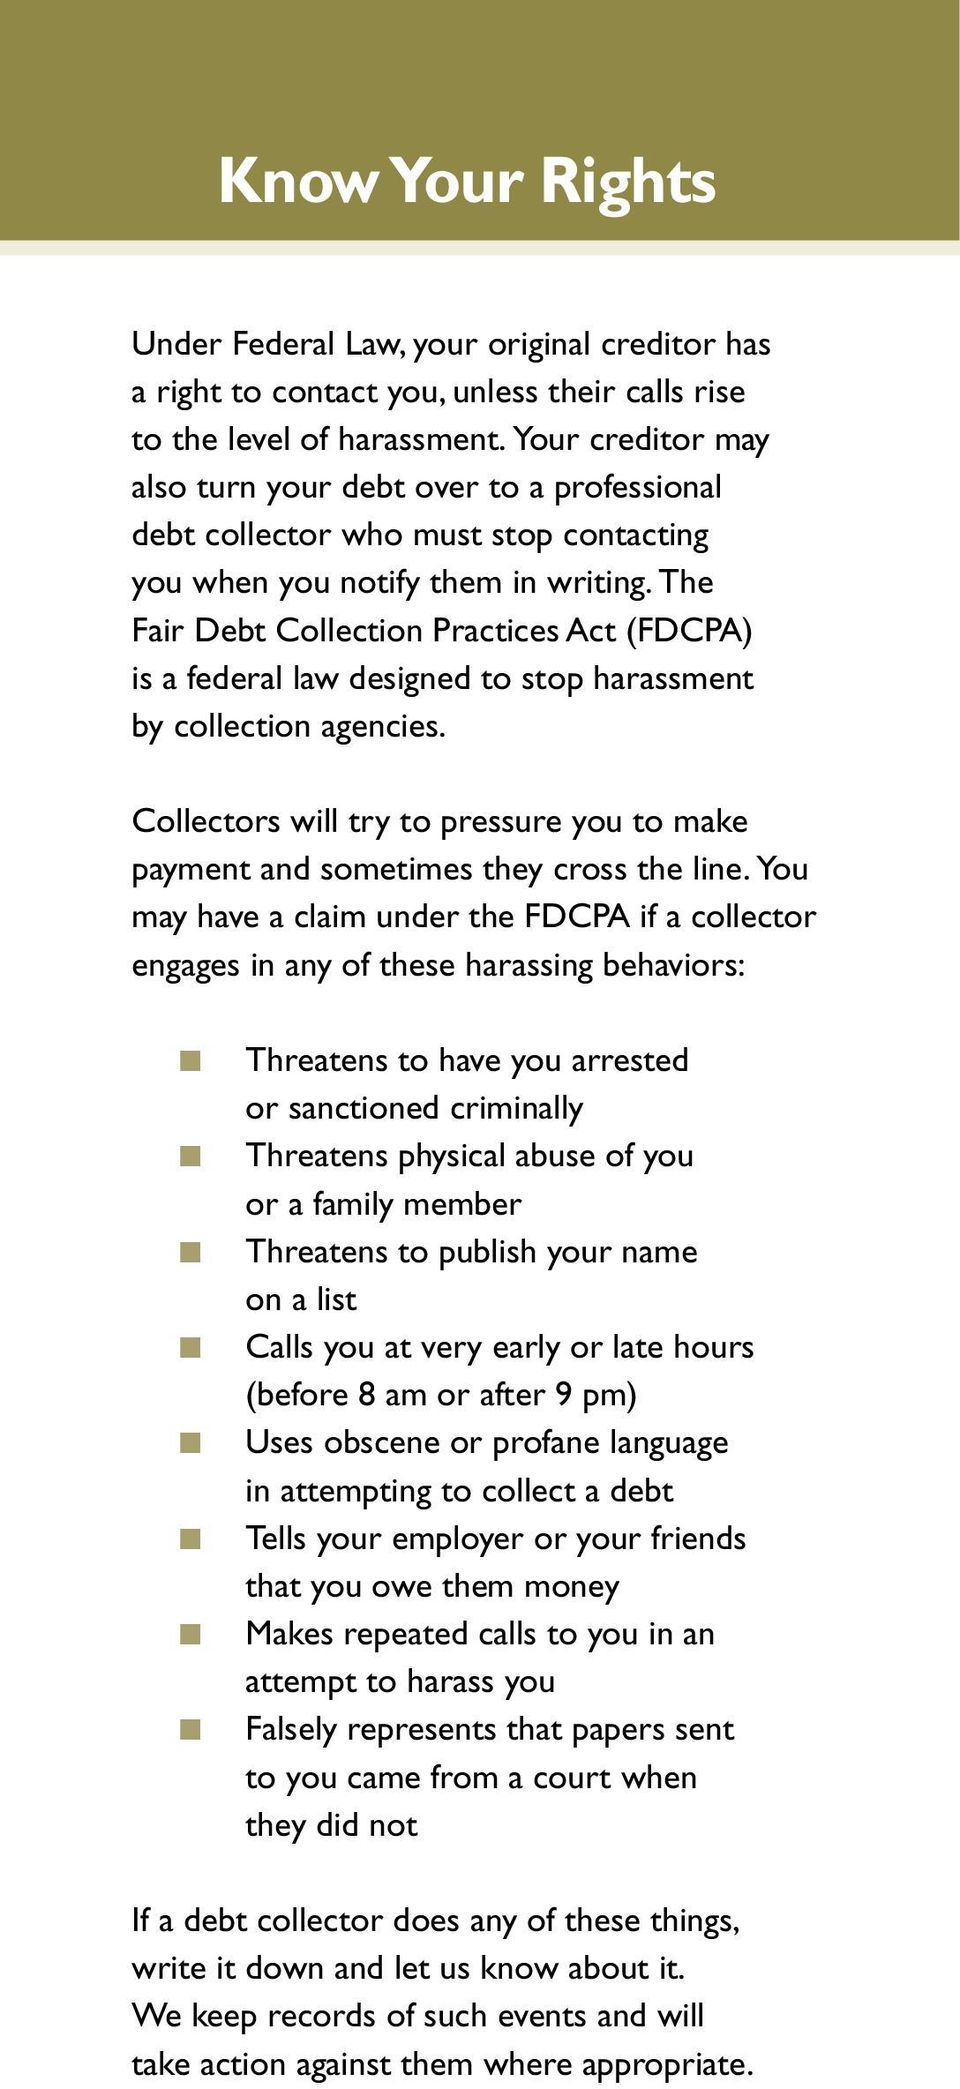 The Fair Debt Collectio Practices Act (FDCPA) is a federal law desiged to stop harassmet by collectio agecies. Collectors will try to pressure you to make paymet ad sometimes they cross the lie.